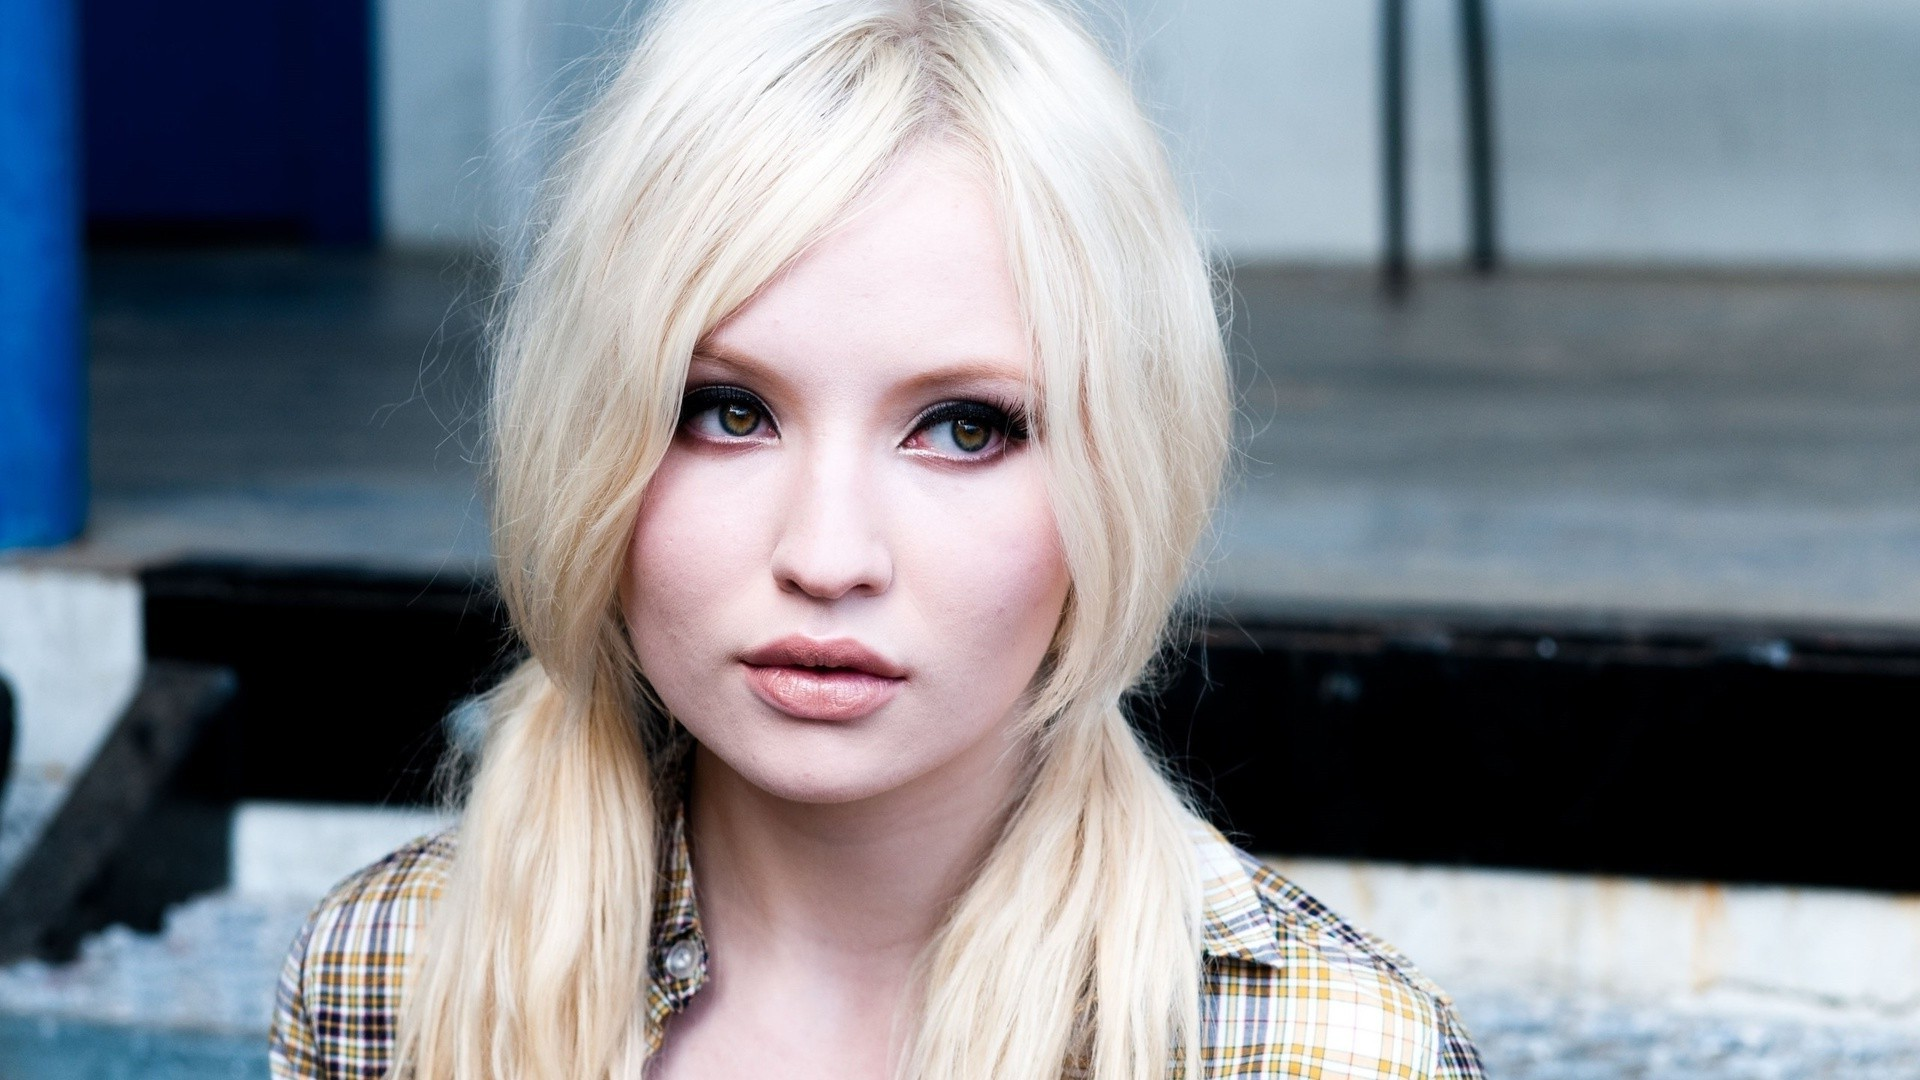 Emily Browning Wallpapers High Resolution And Quality Download